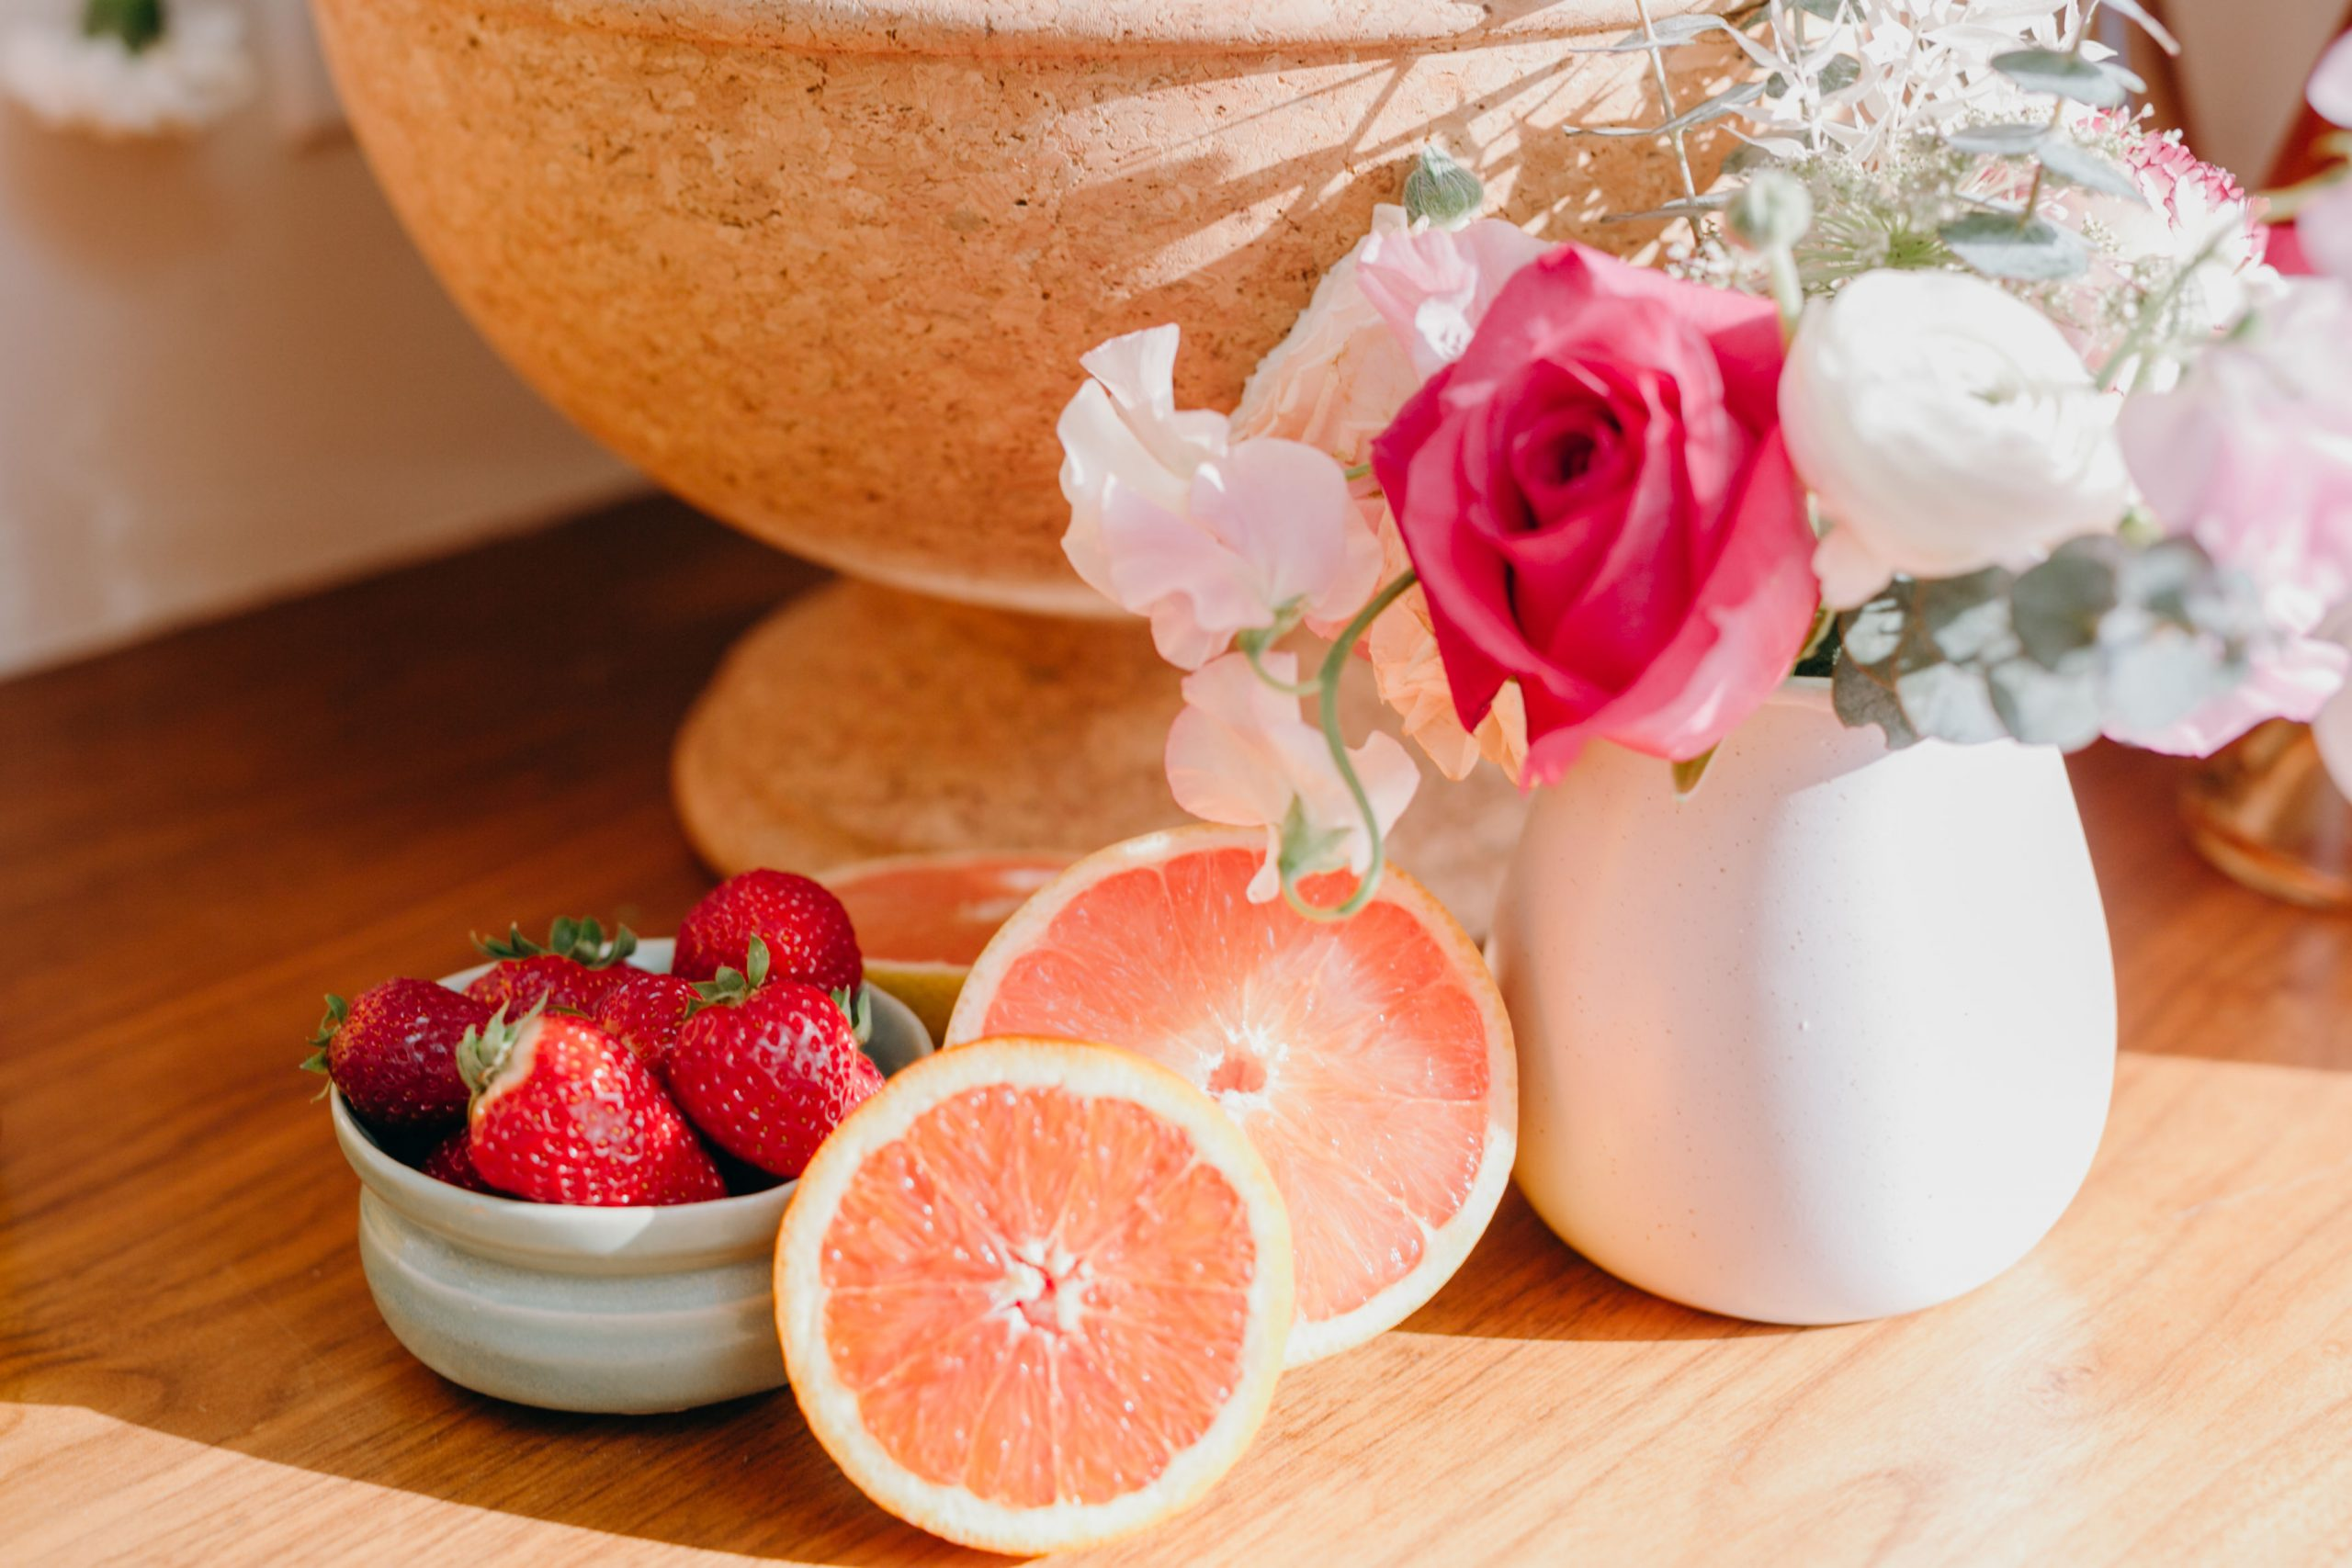 fresh grapefruit and strawberries with floral bouquet